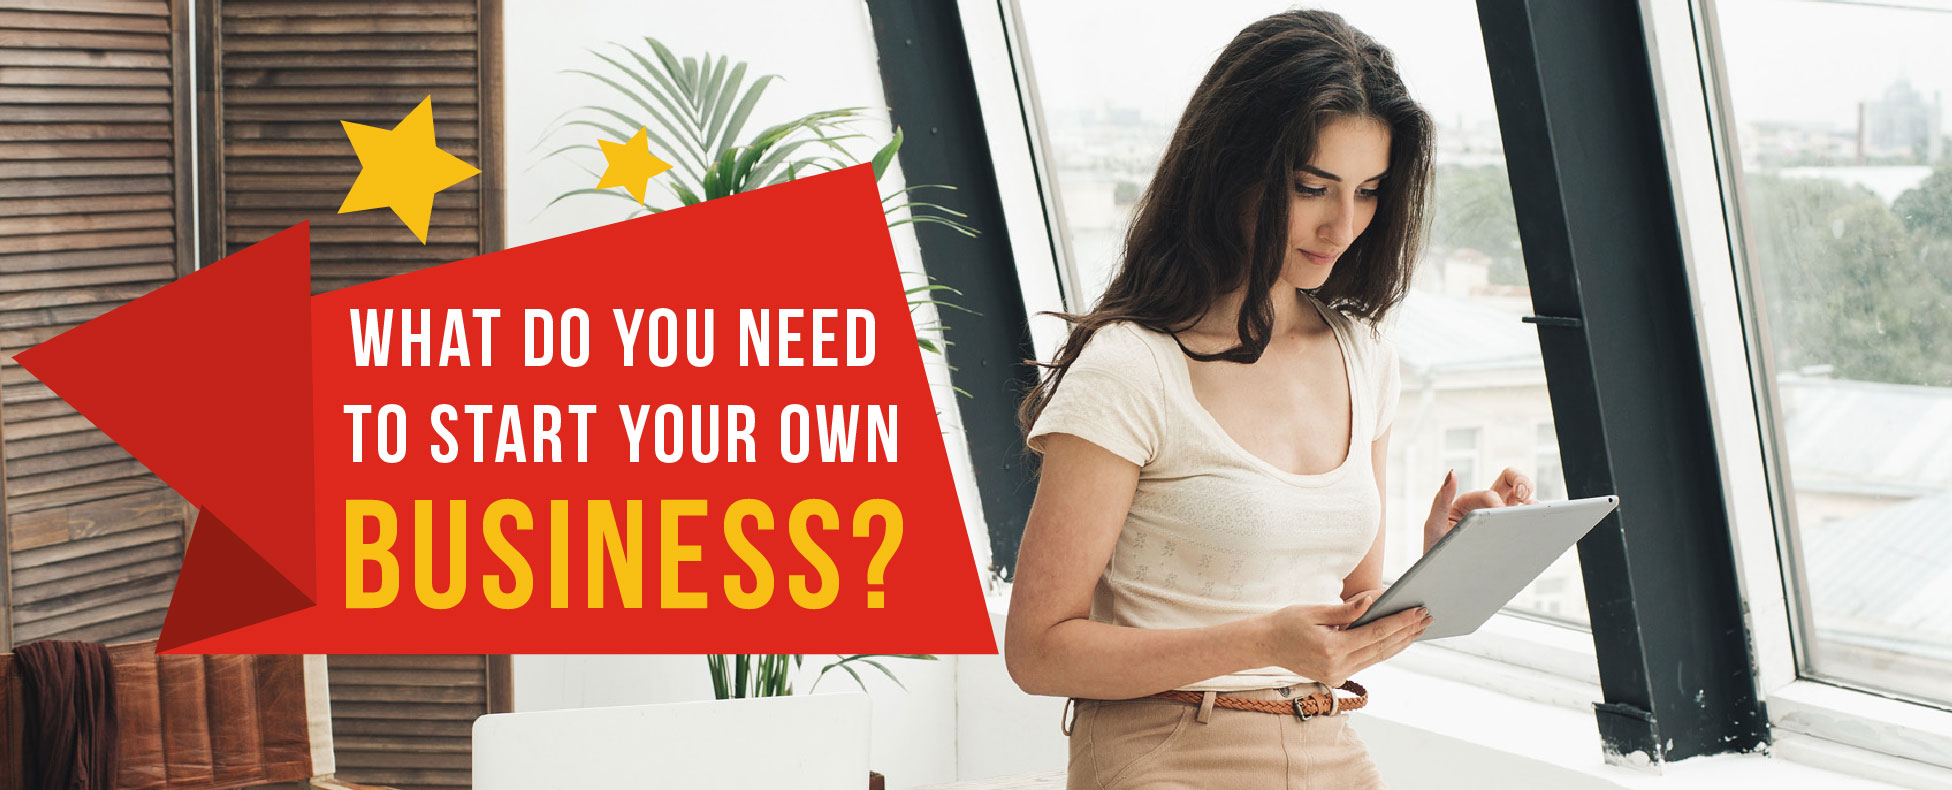 What Do You Need to Start Your Own Business?